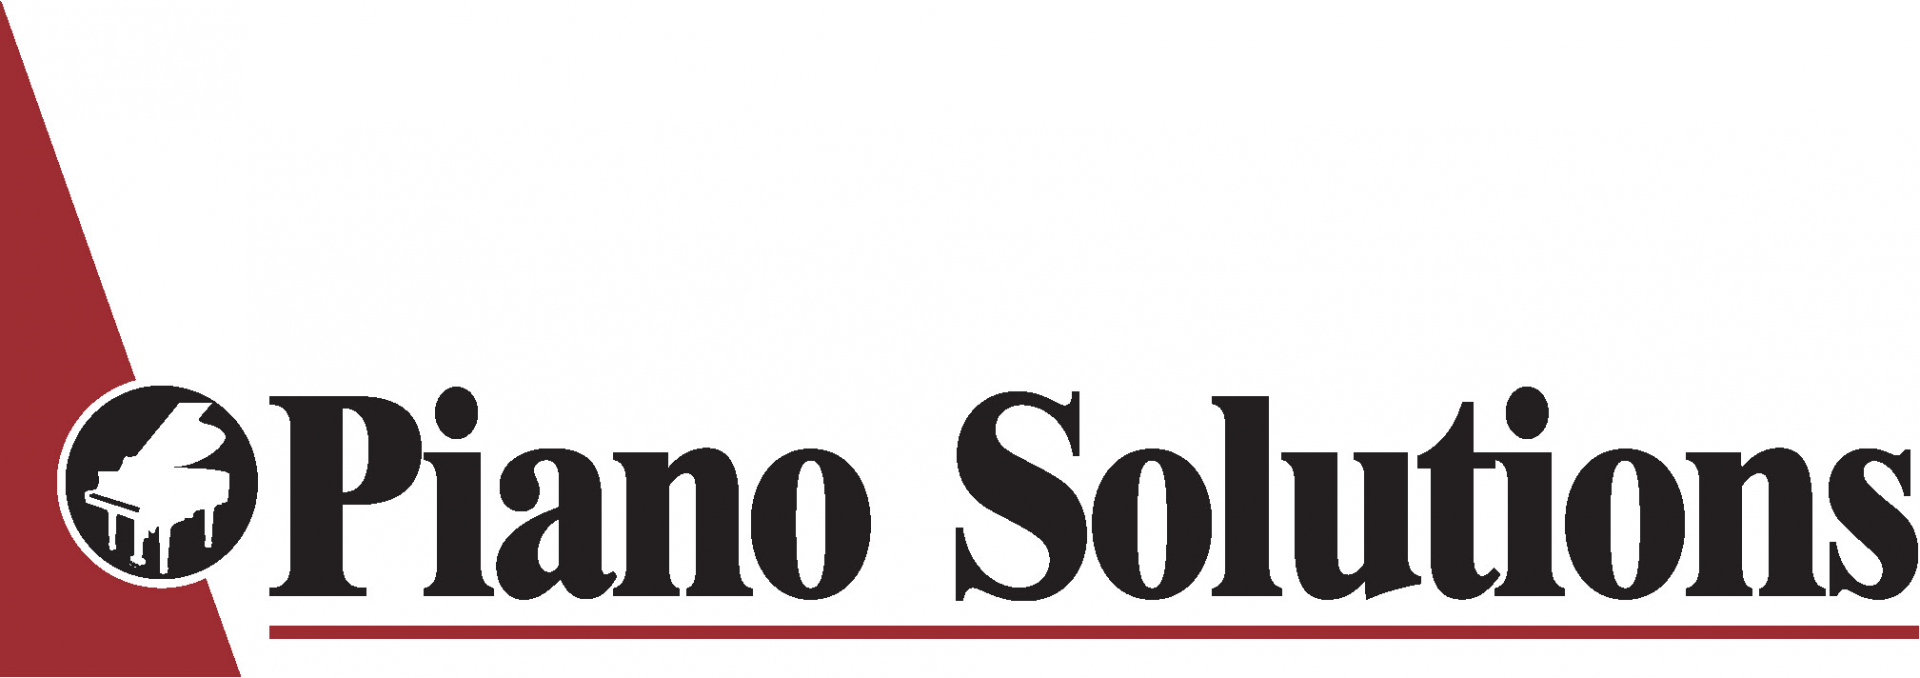 2012PianoSolutions_LOGO.PNG